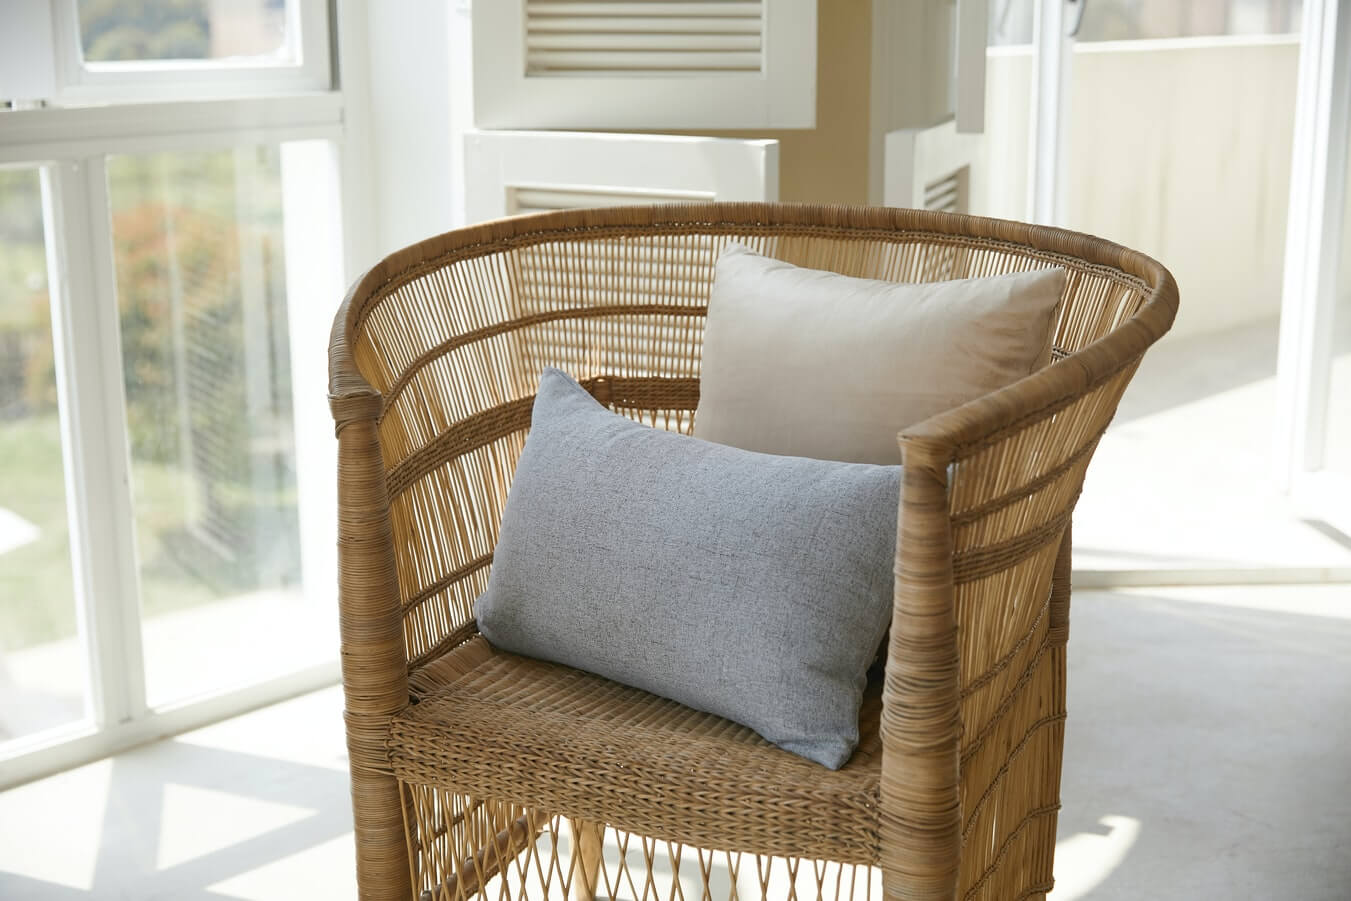 a rattan chair in a bright room